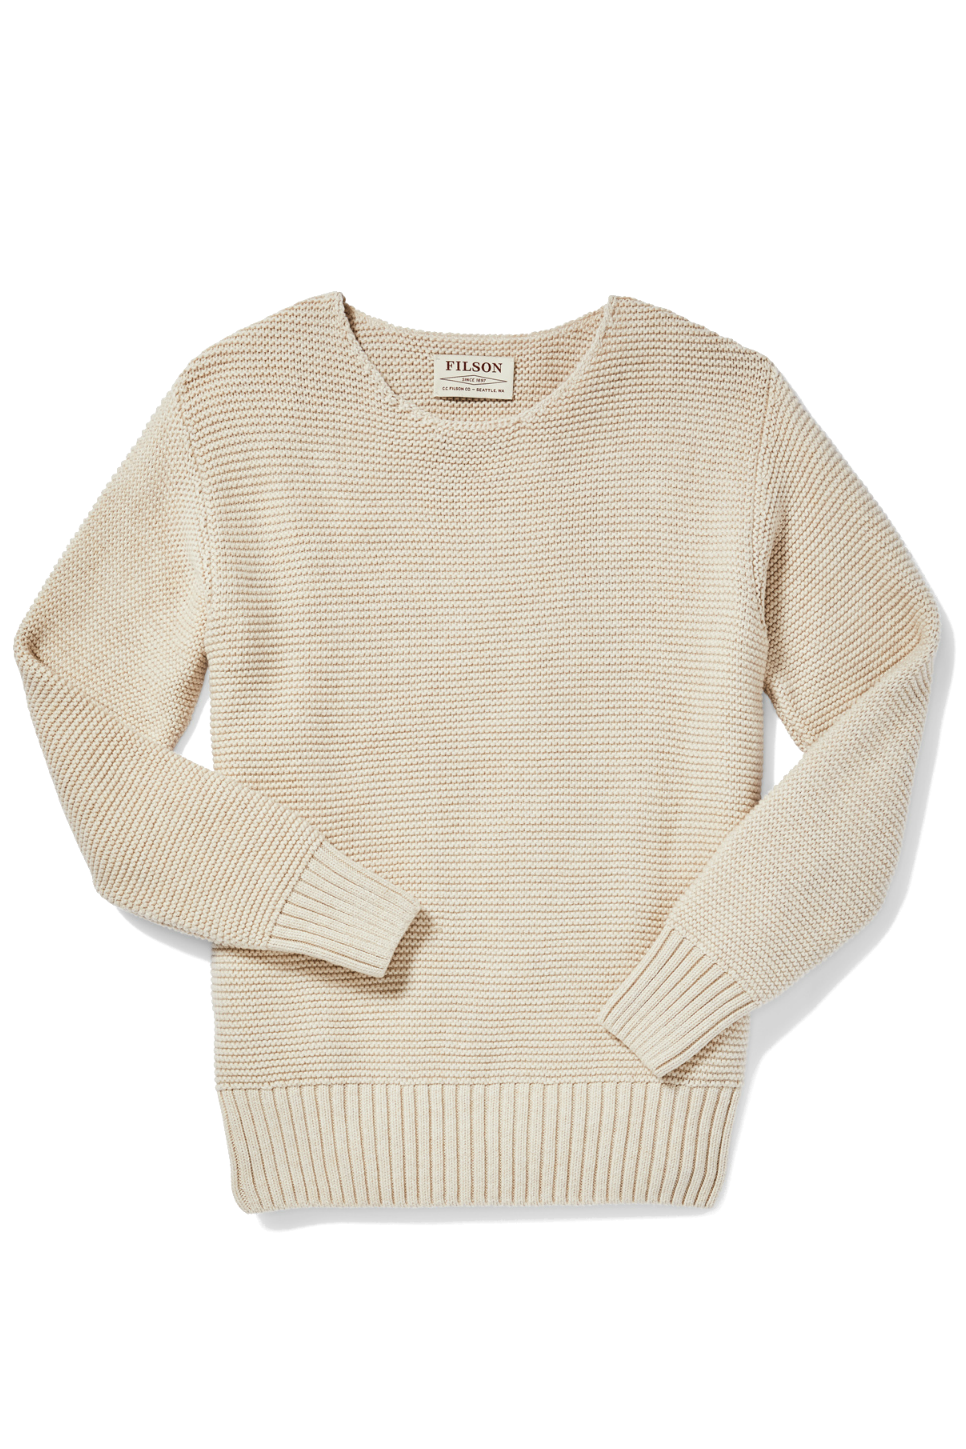 Filson - Lake Quinault Crewneck Sweater - Natural Heather - Front